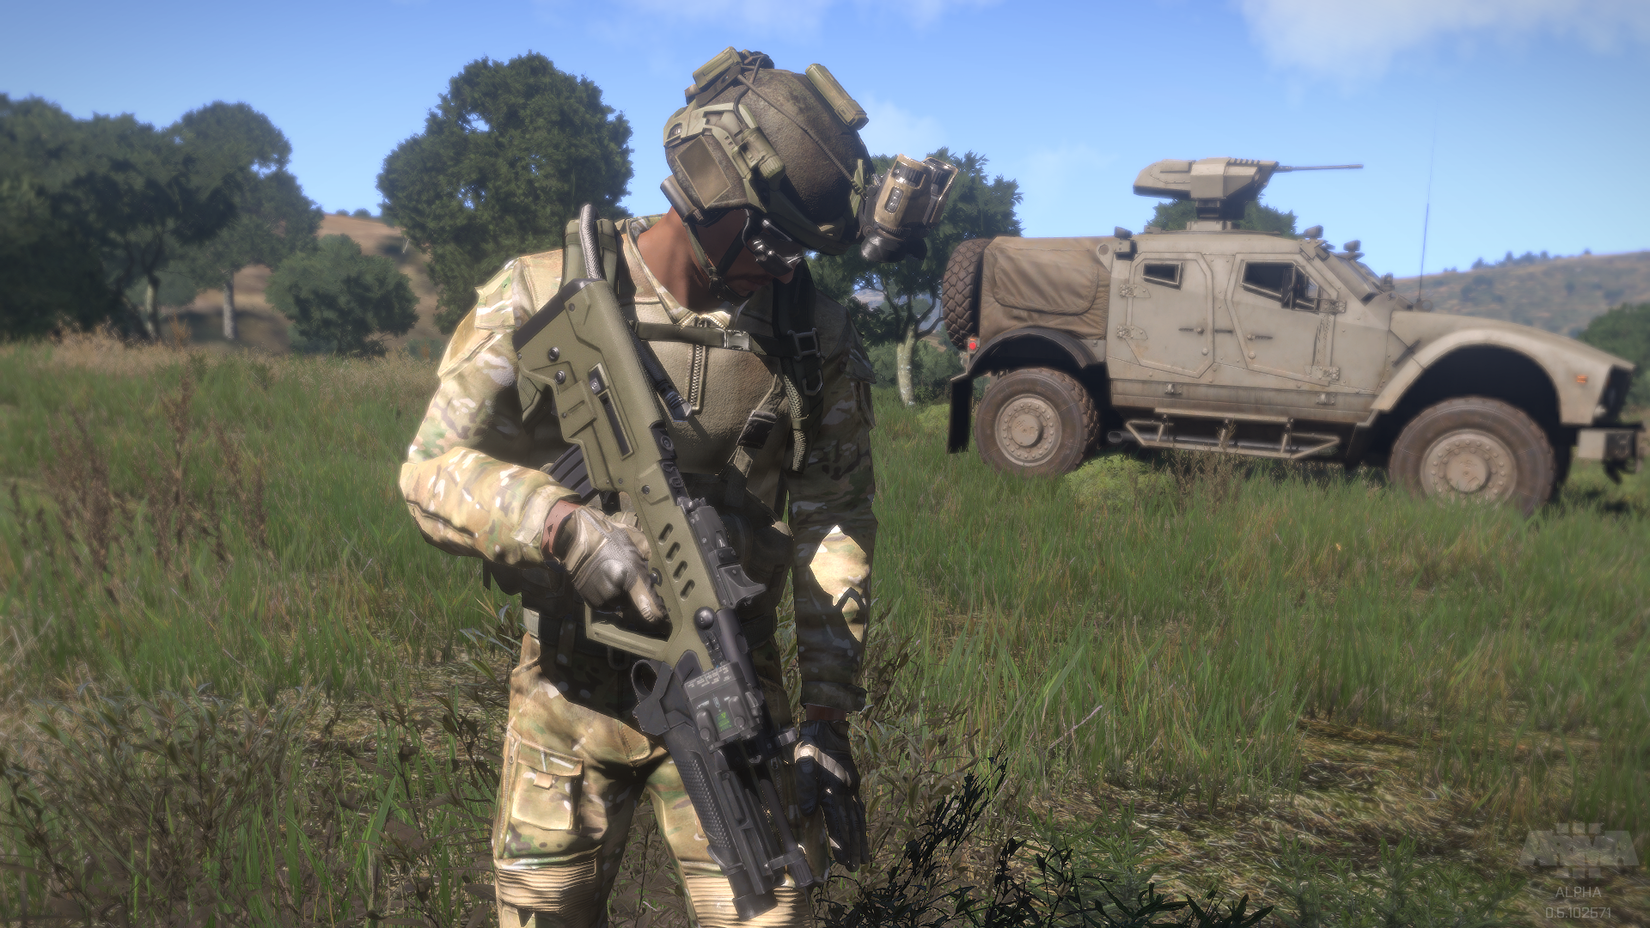 ARMA3 weapons - SimHQ Forums